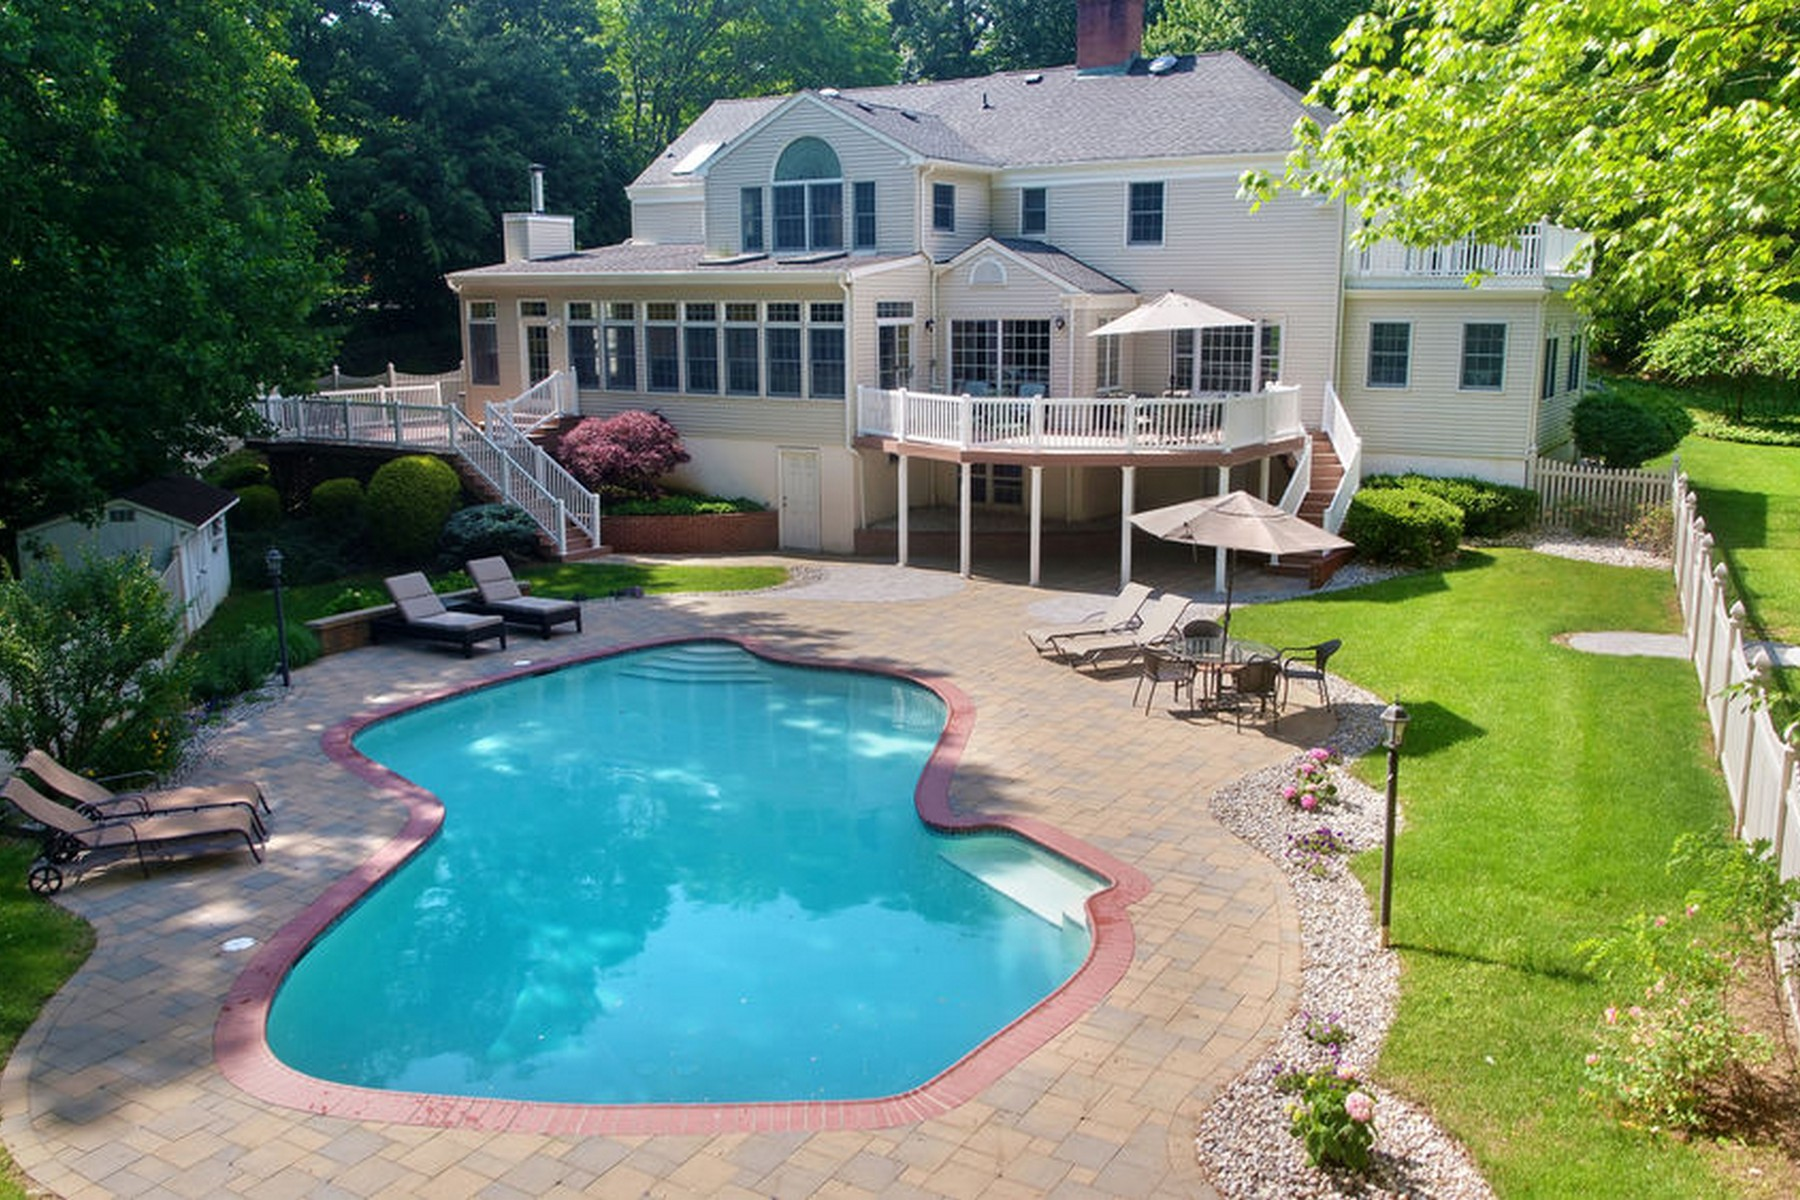 Single Family Homes for Sale at Majestic Custom Colonial 56 Glenwood Road, Colts Neck, New Jersey 07722 United States